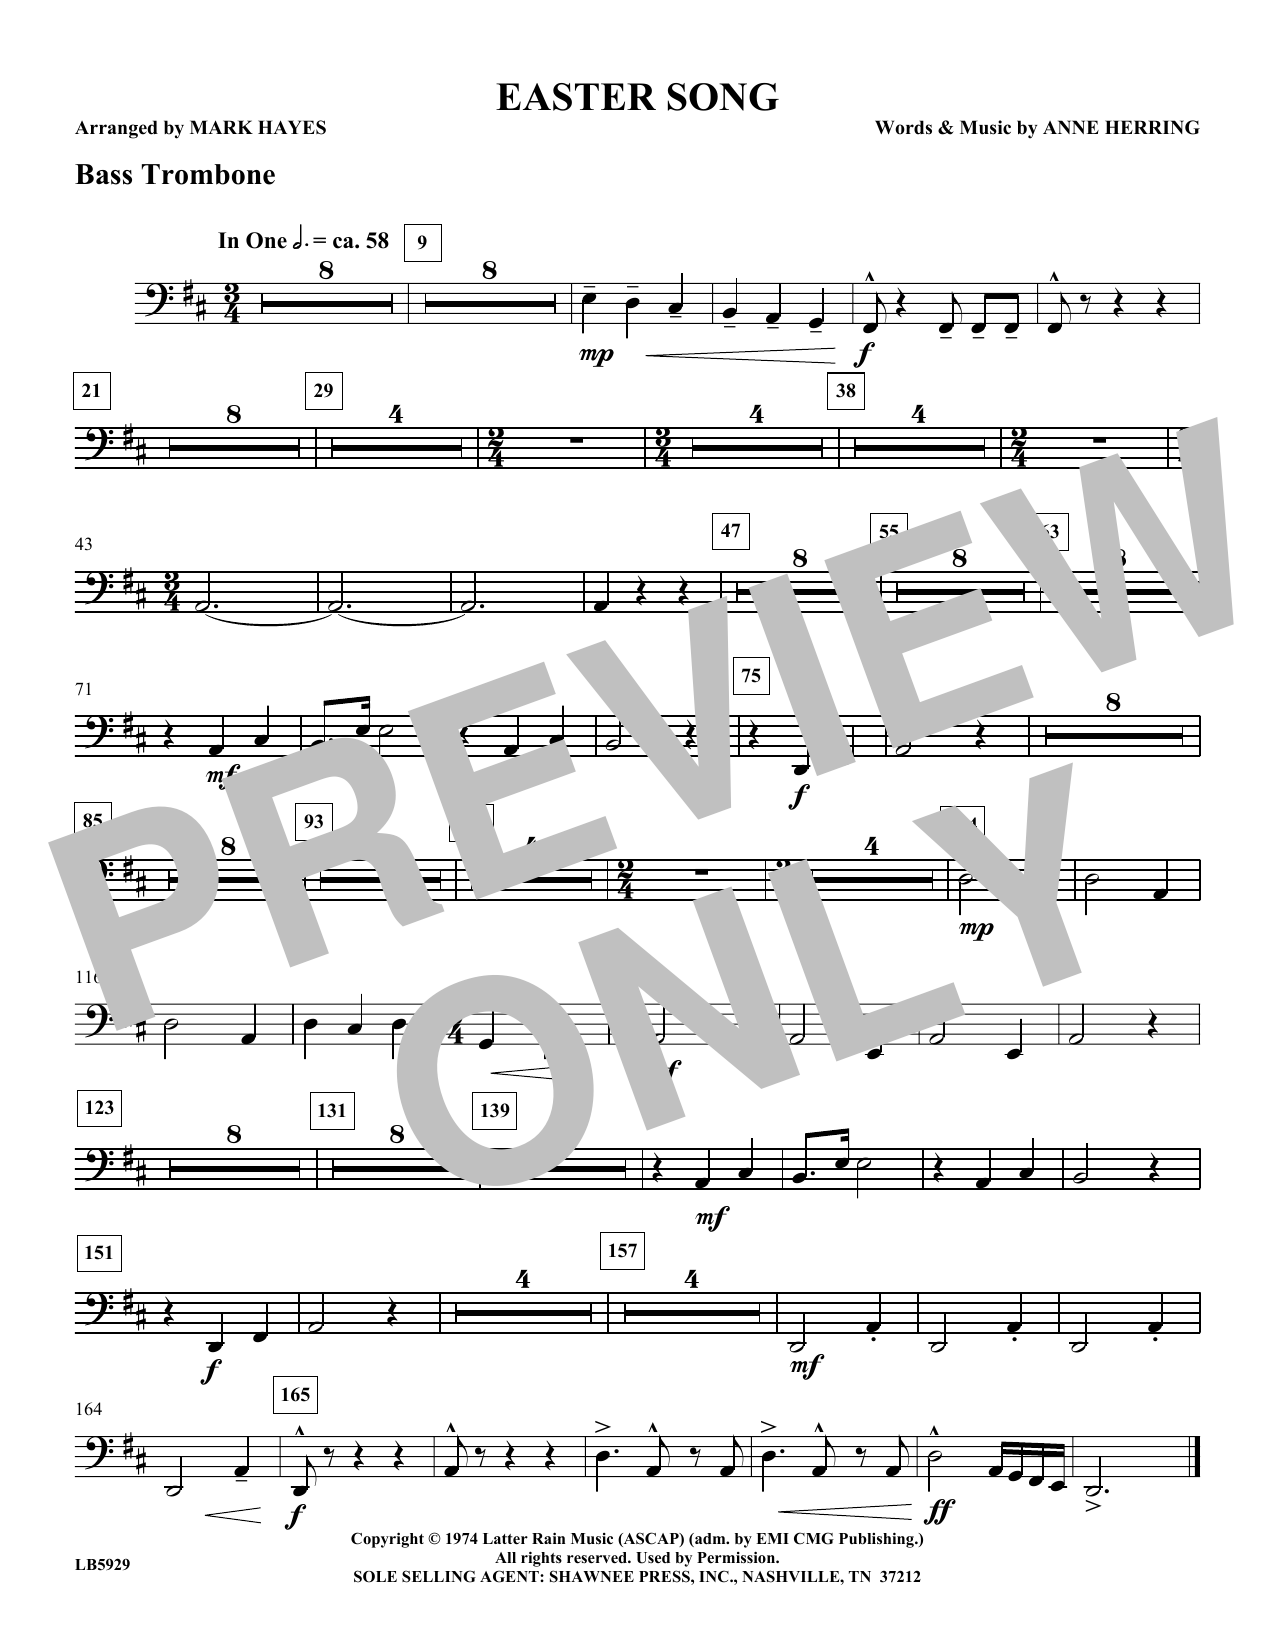 Mark Hayes Easter Song - Bass Trombone sheet music notes and chords. Download Printable PDF.